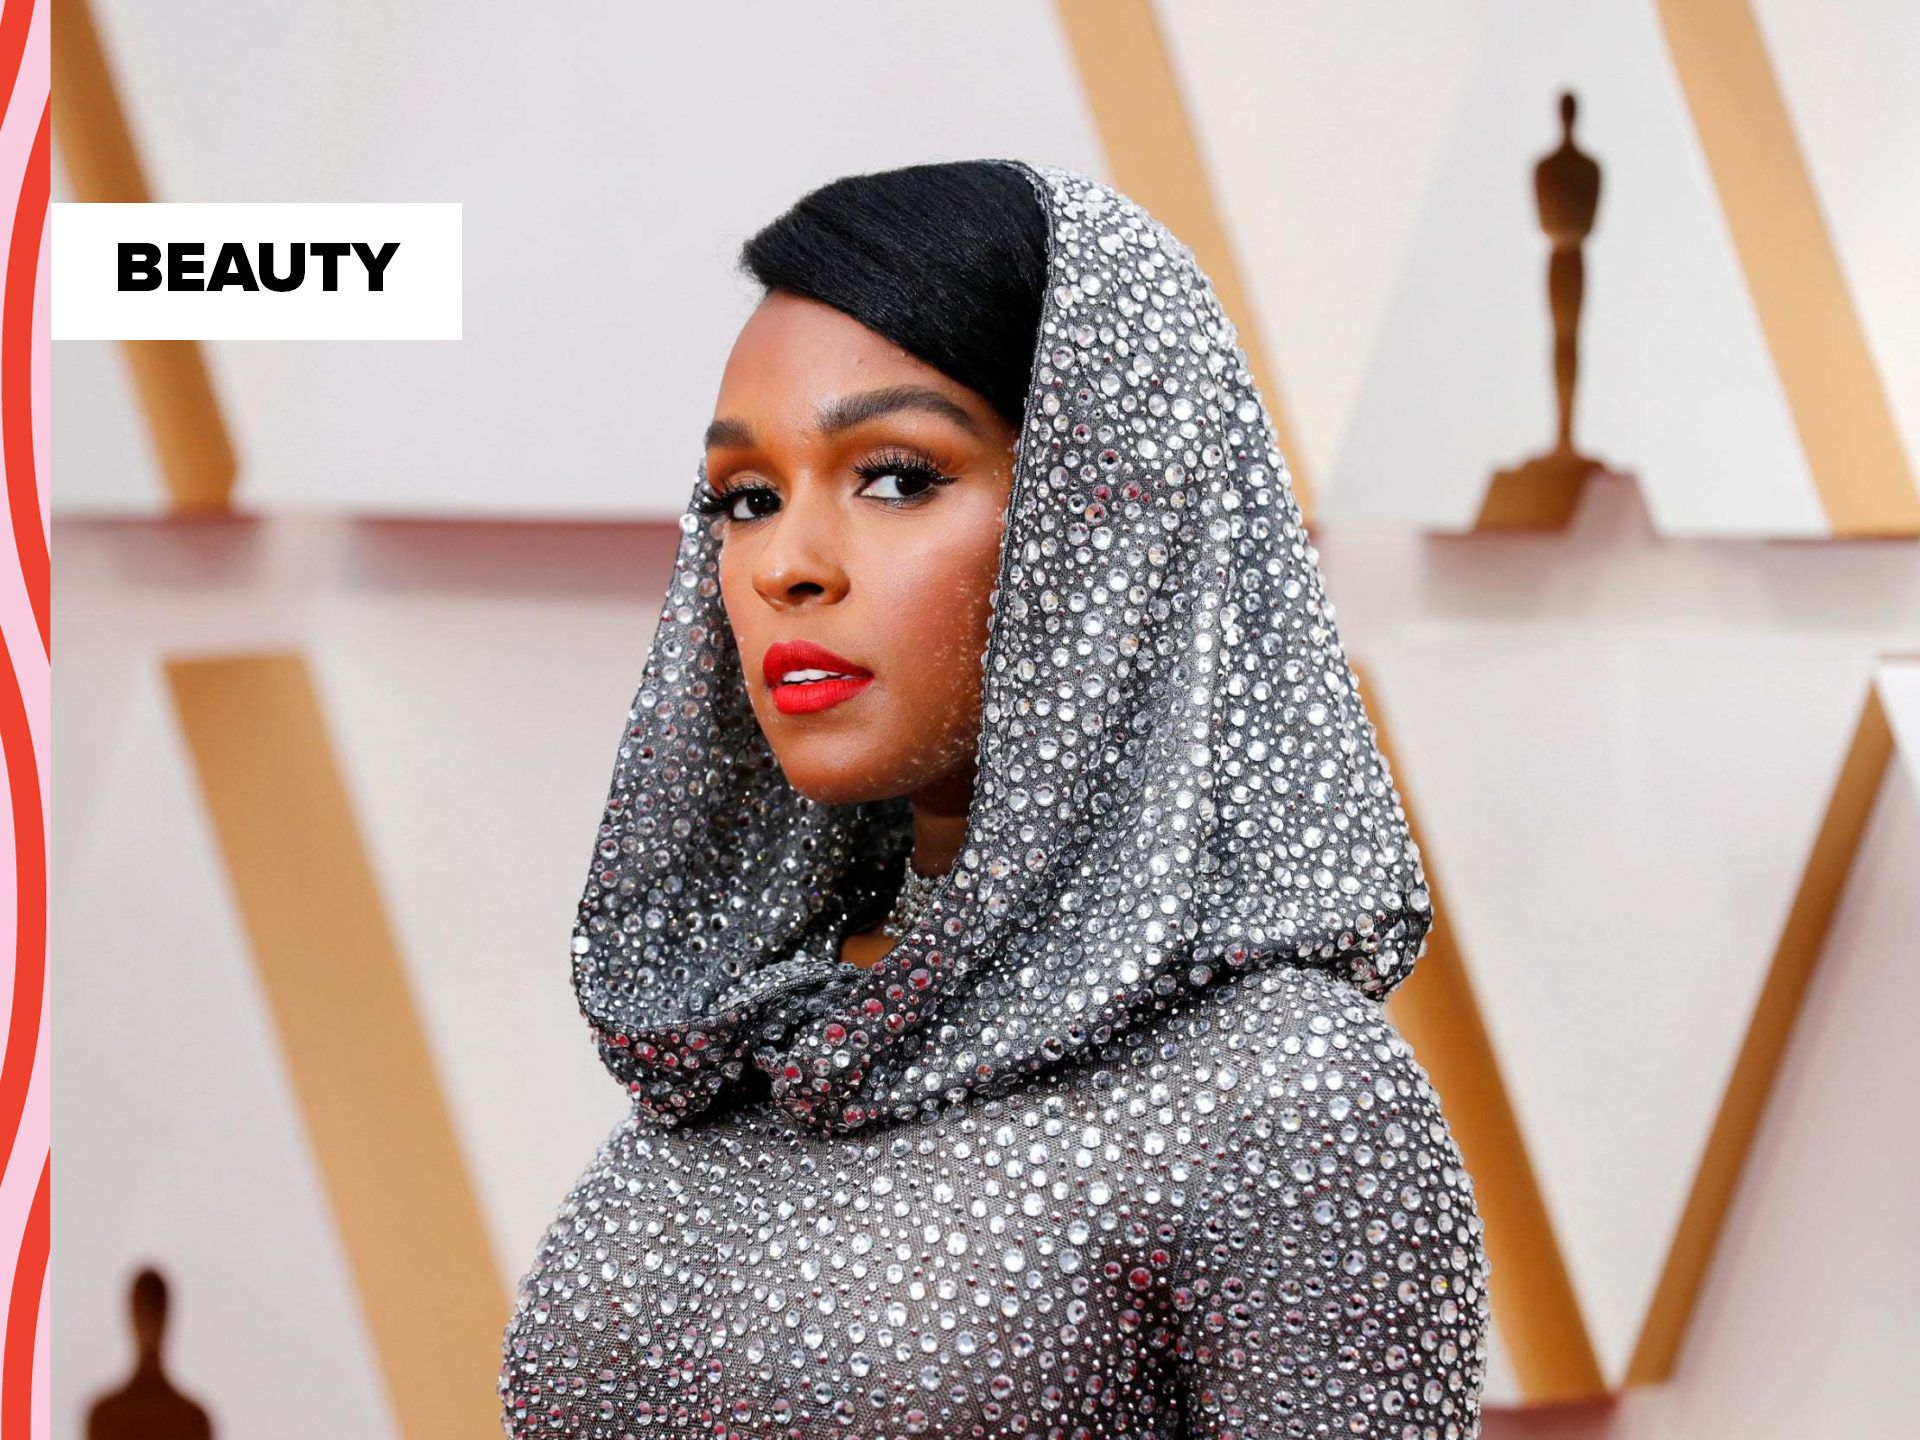 Best Dressed Celebrities at The Oscars 2020: Looks We Needed In Our Life